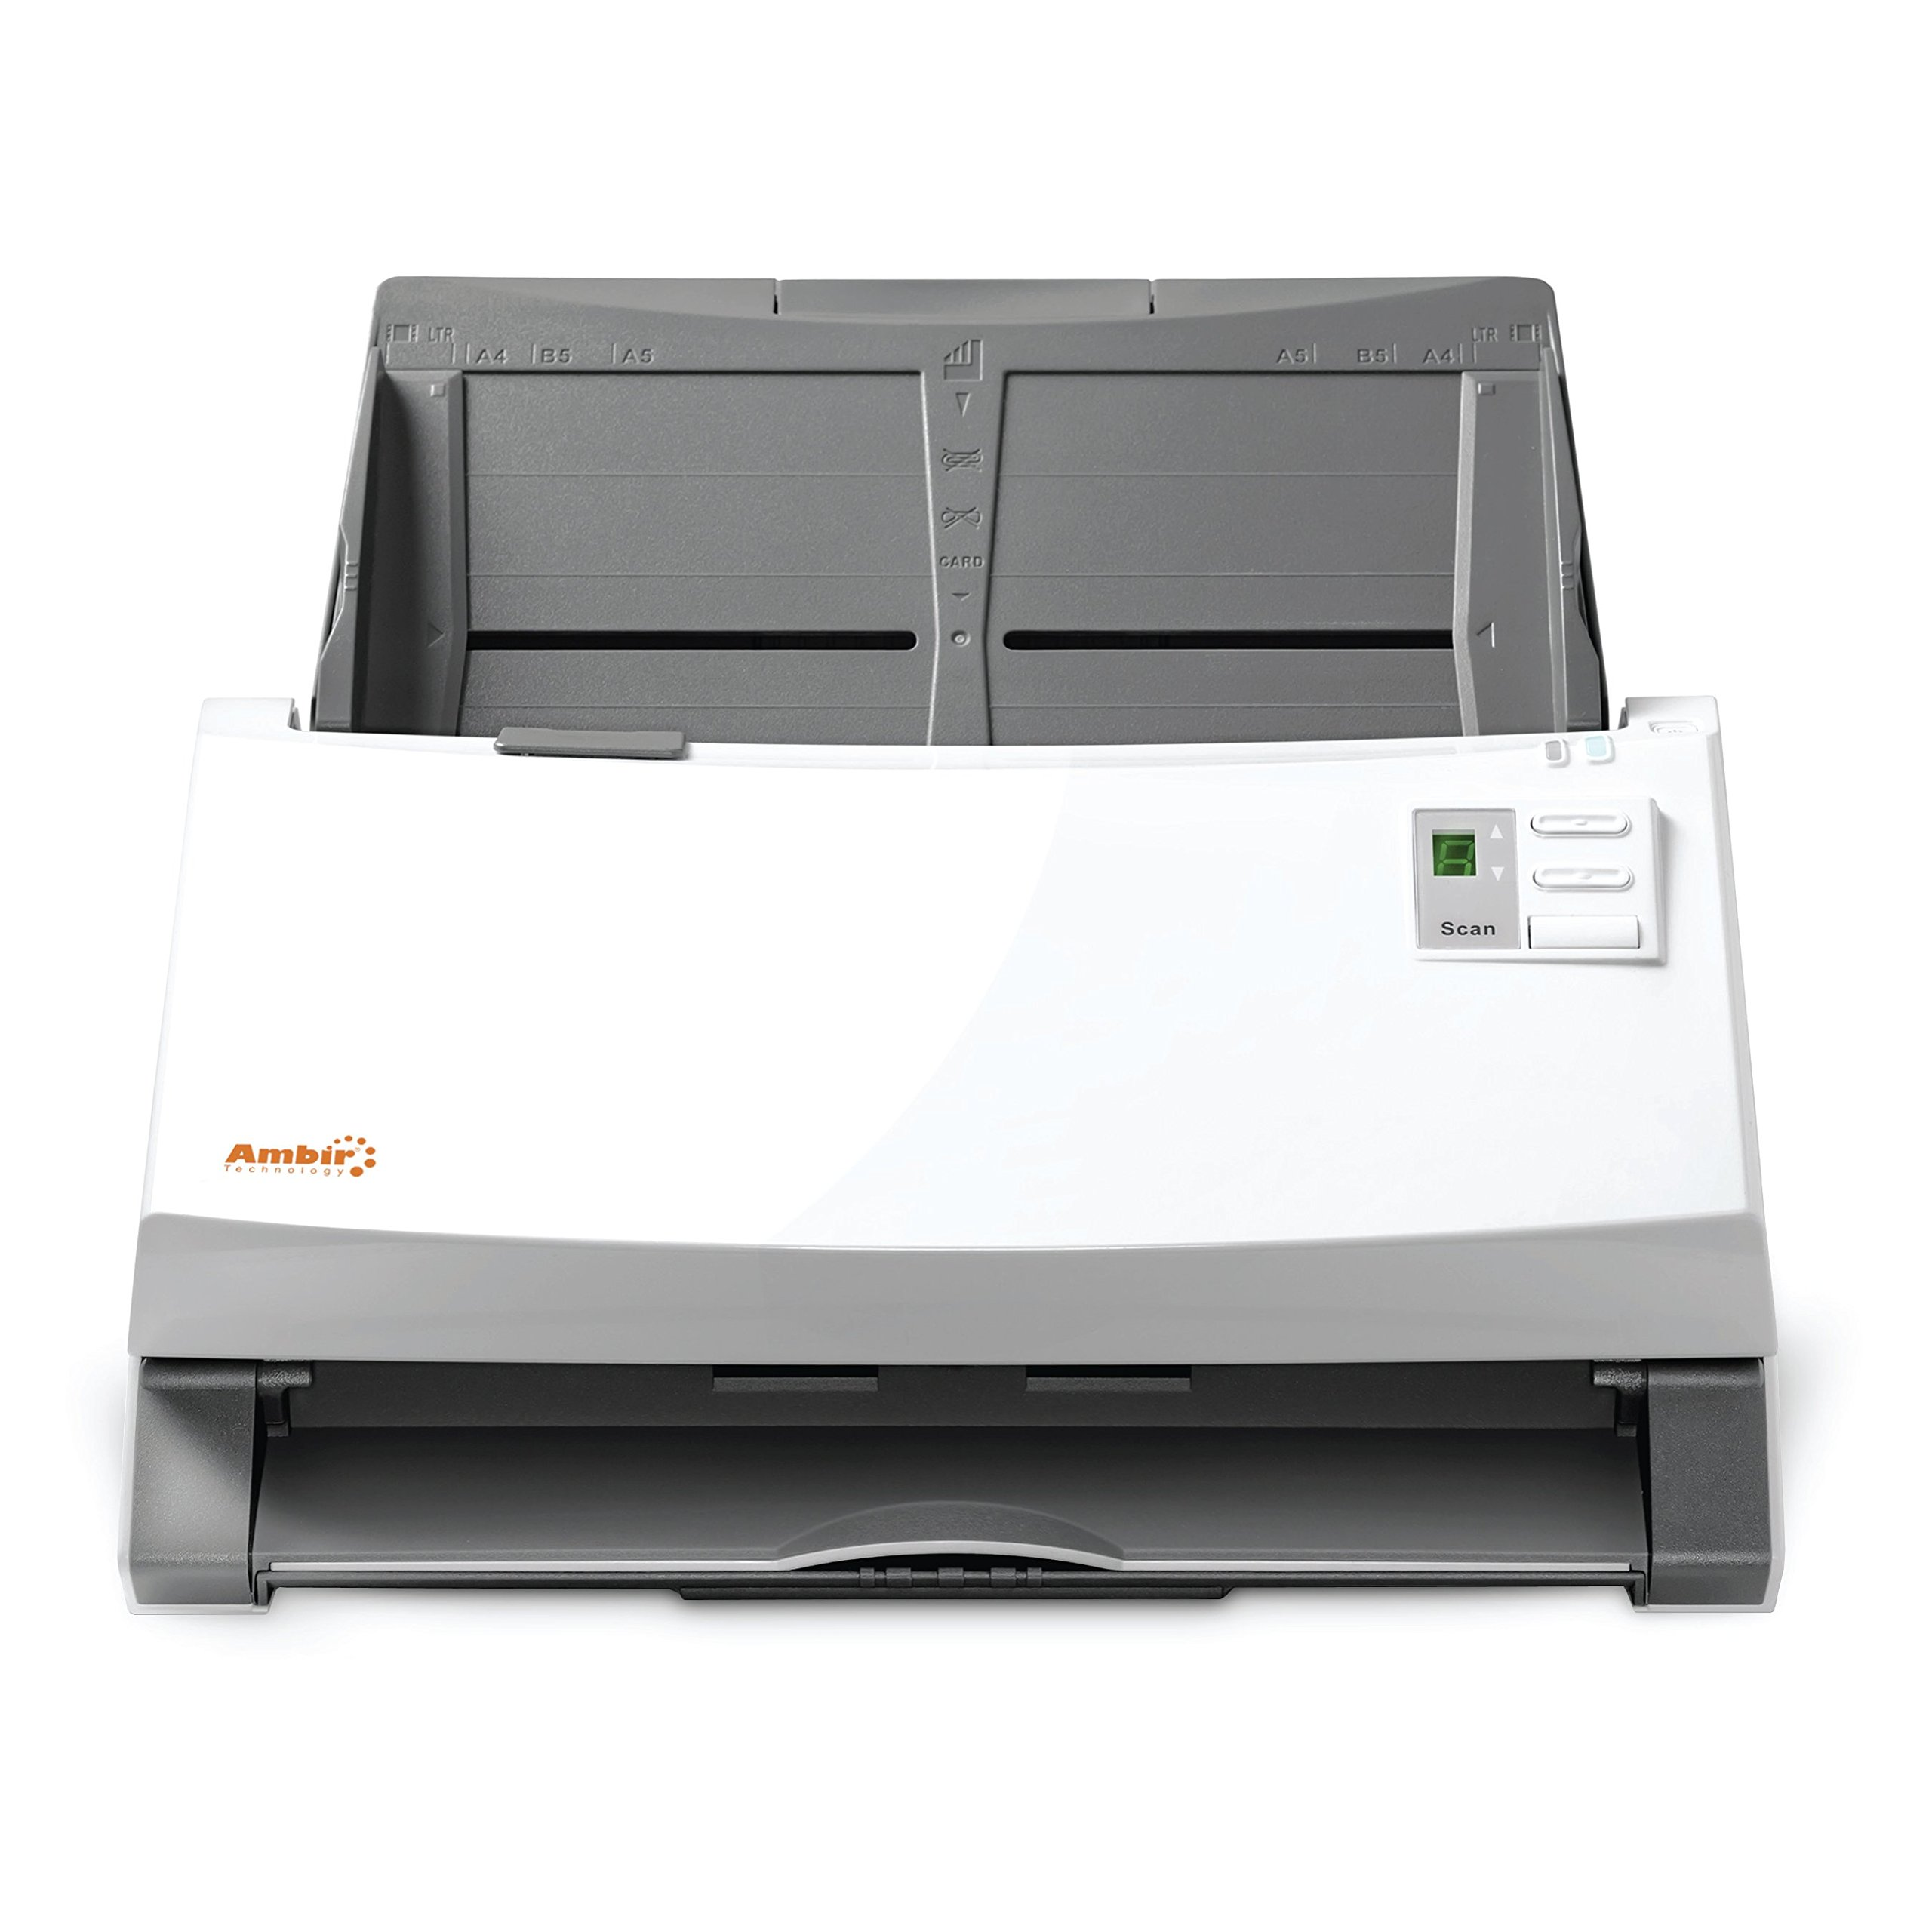 Ambir ImageScan Pro 940u (DS940-AS) 40ppm High-Speed Document Scanner with UltraSonic Misfeed Detection by Ambir (Image #2)